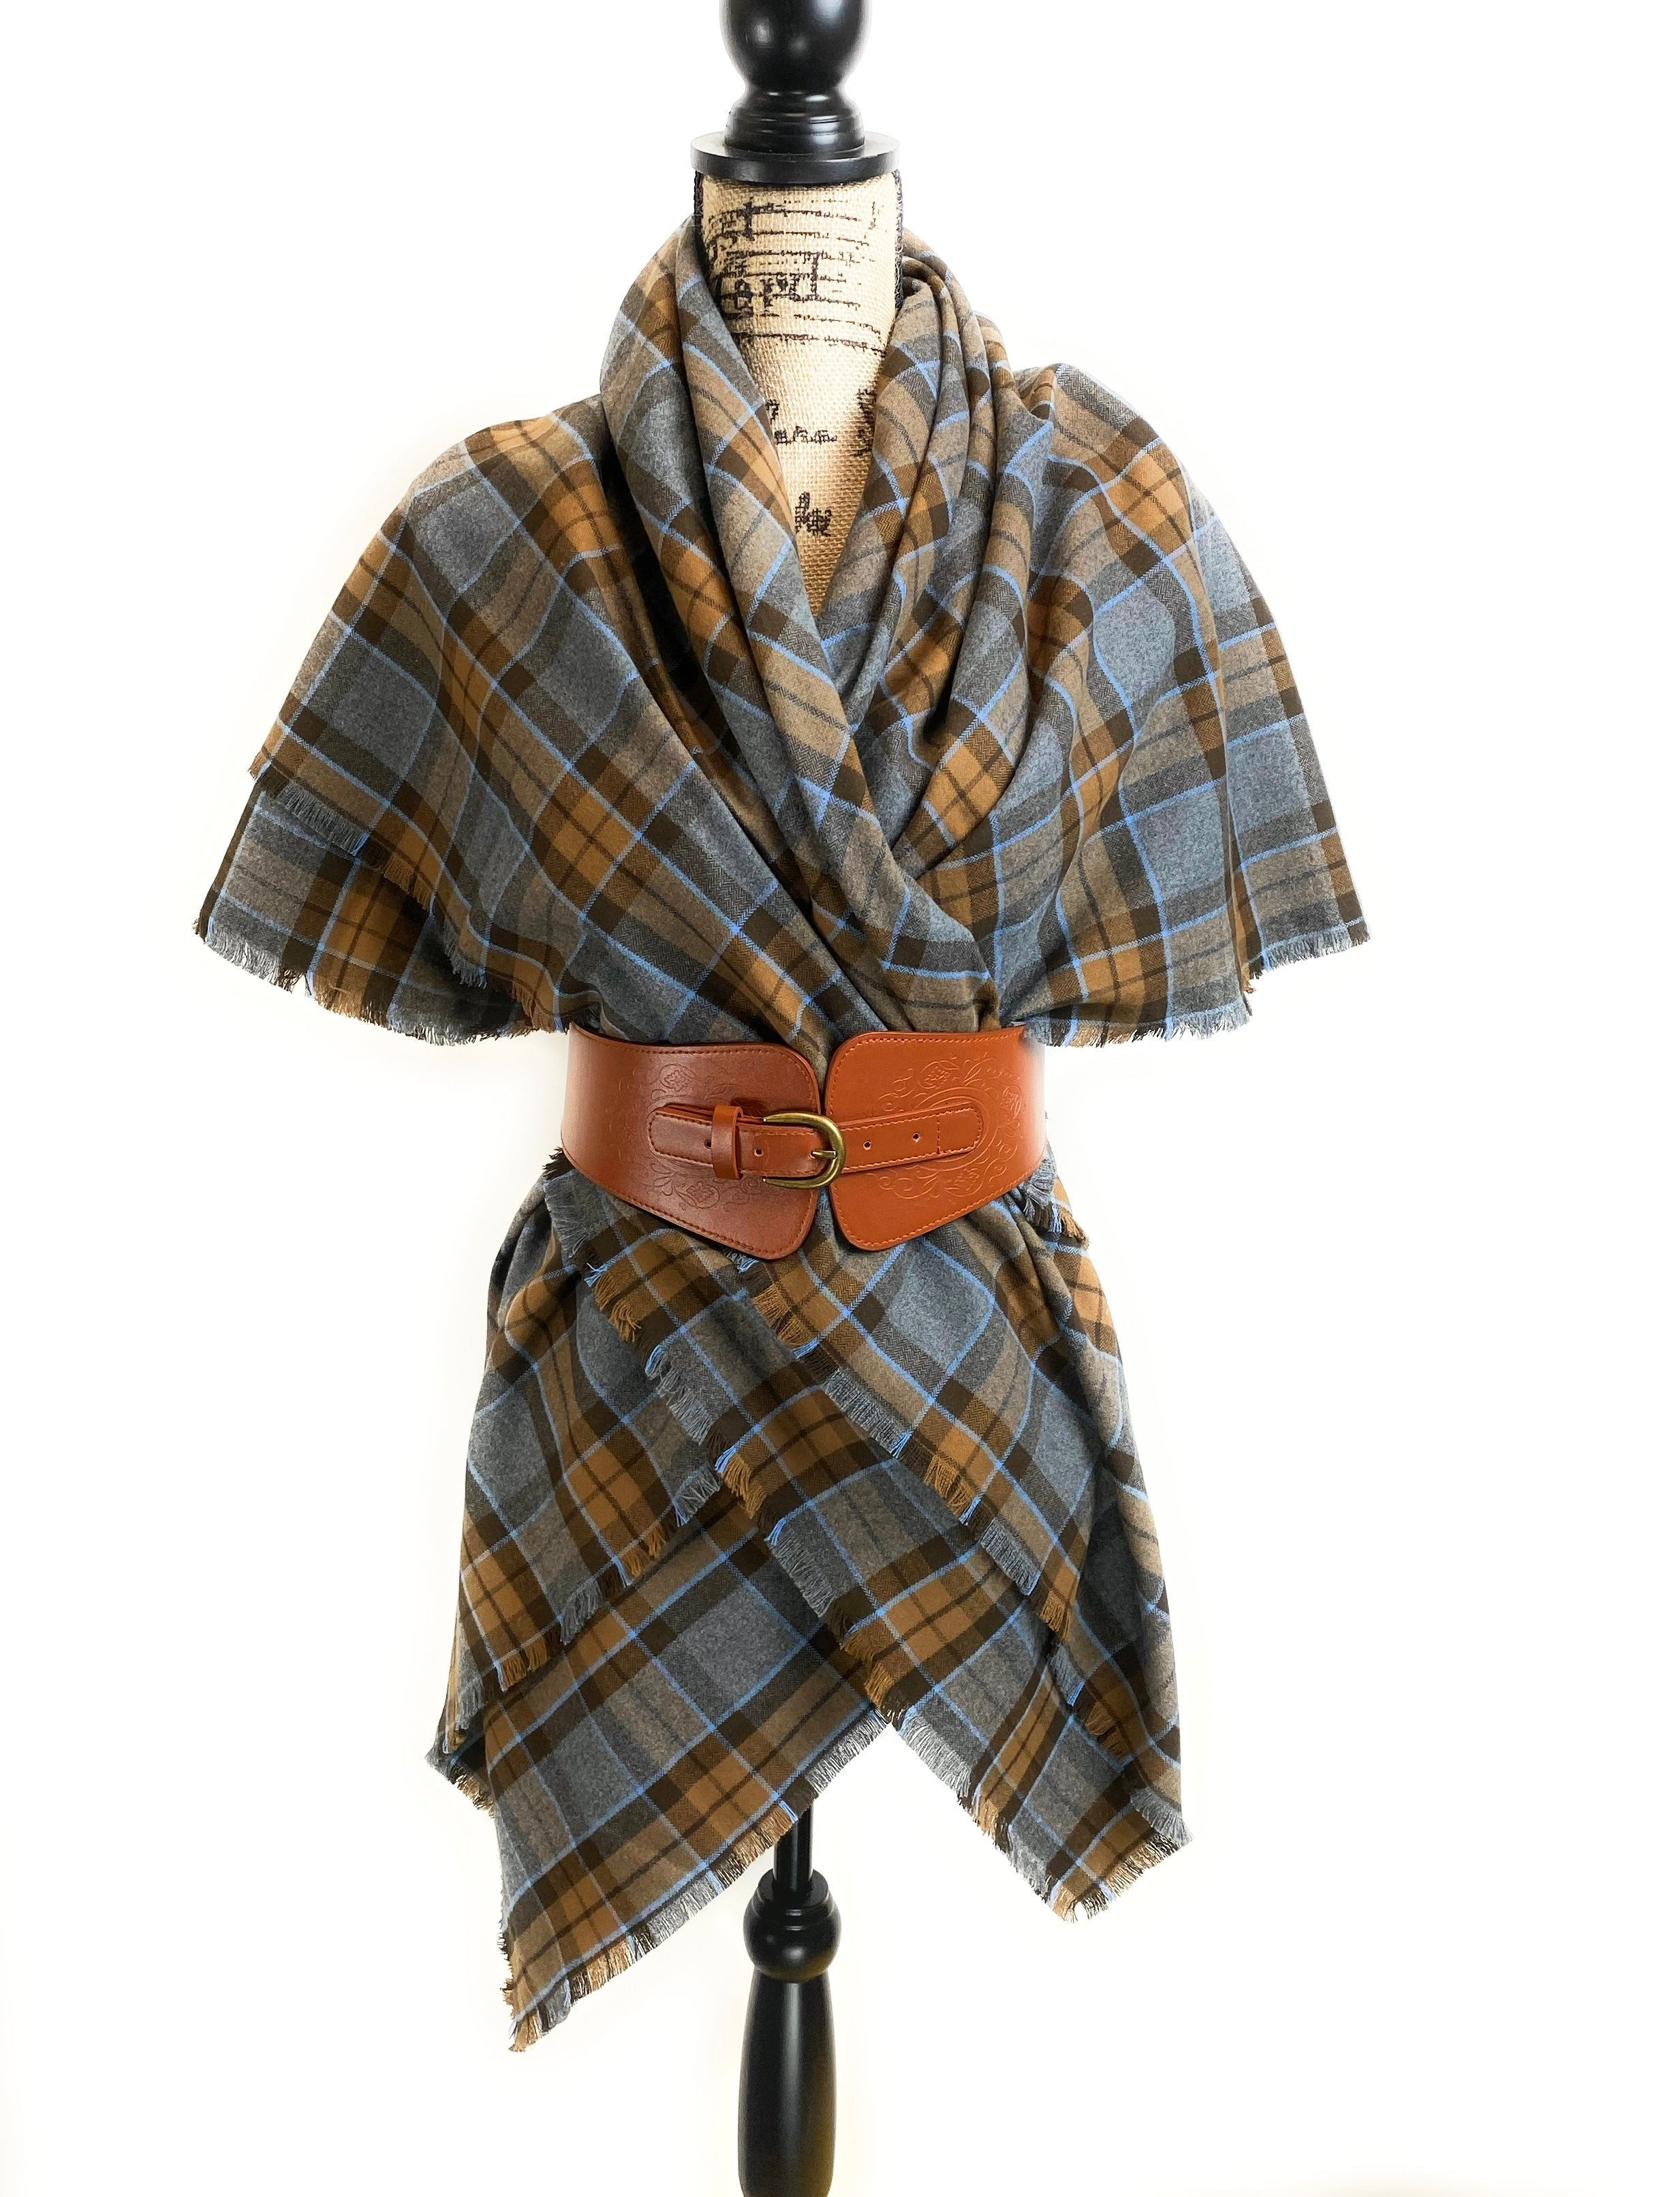 Oversized Blanket Scarf/Earasaid - Outlander Clan MacKenzie Inspired Gray, Brown and Light Blue Cotton Flannel